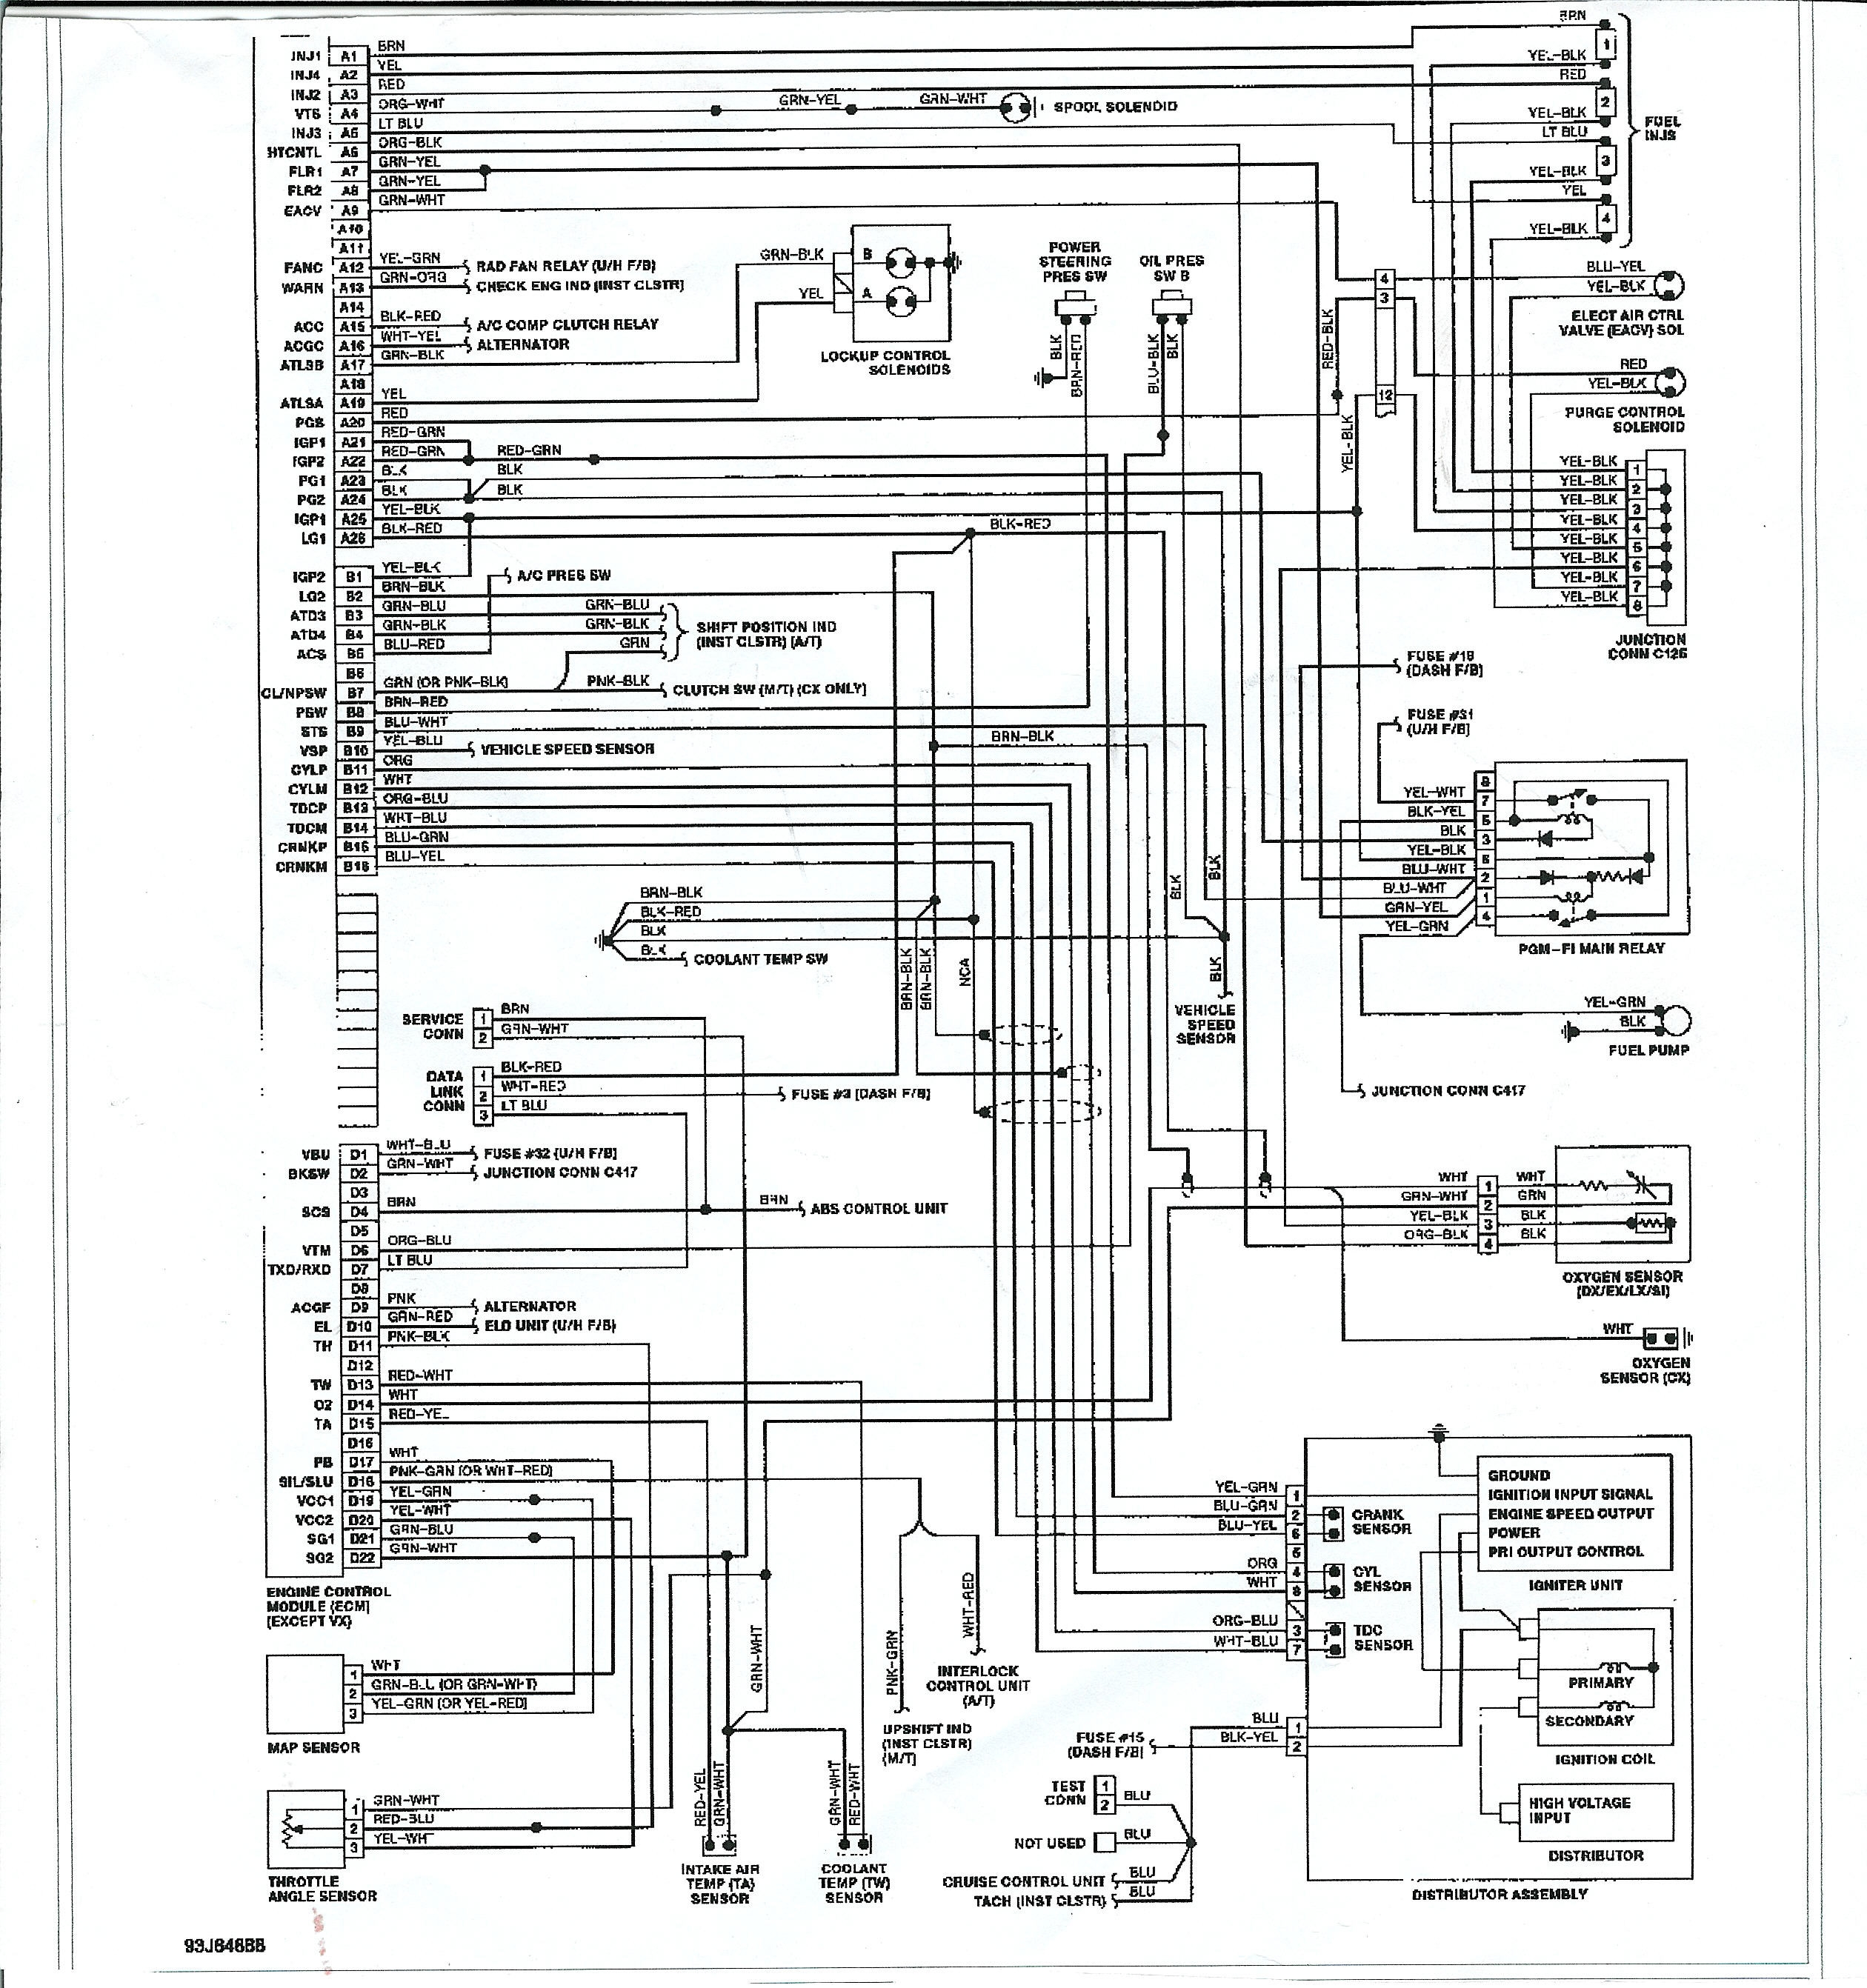 2003 Civic Wiring Diagram